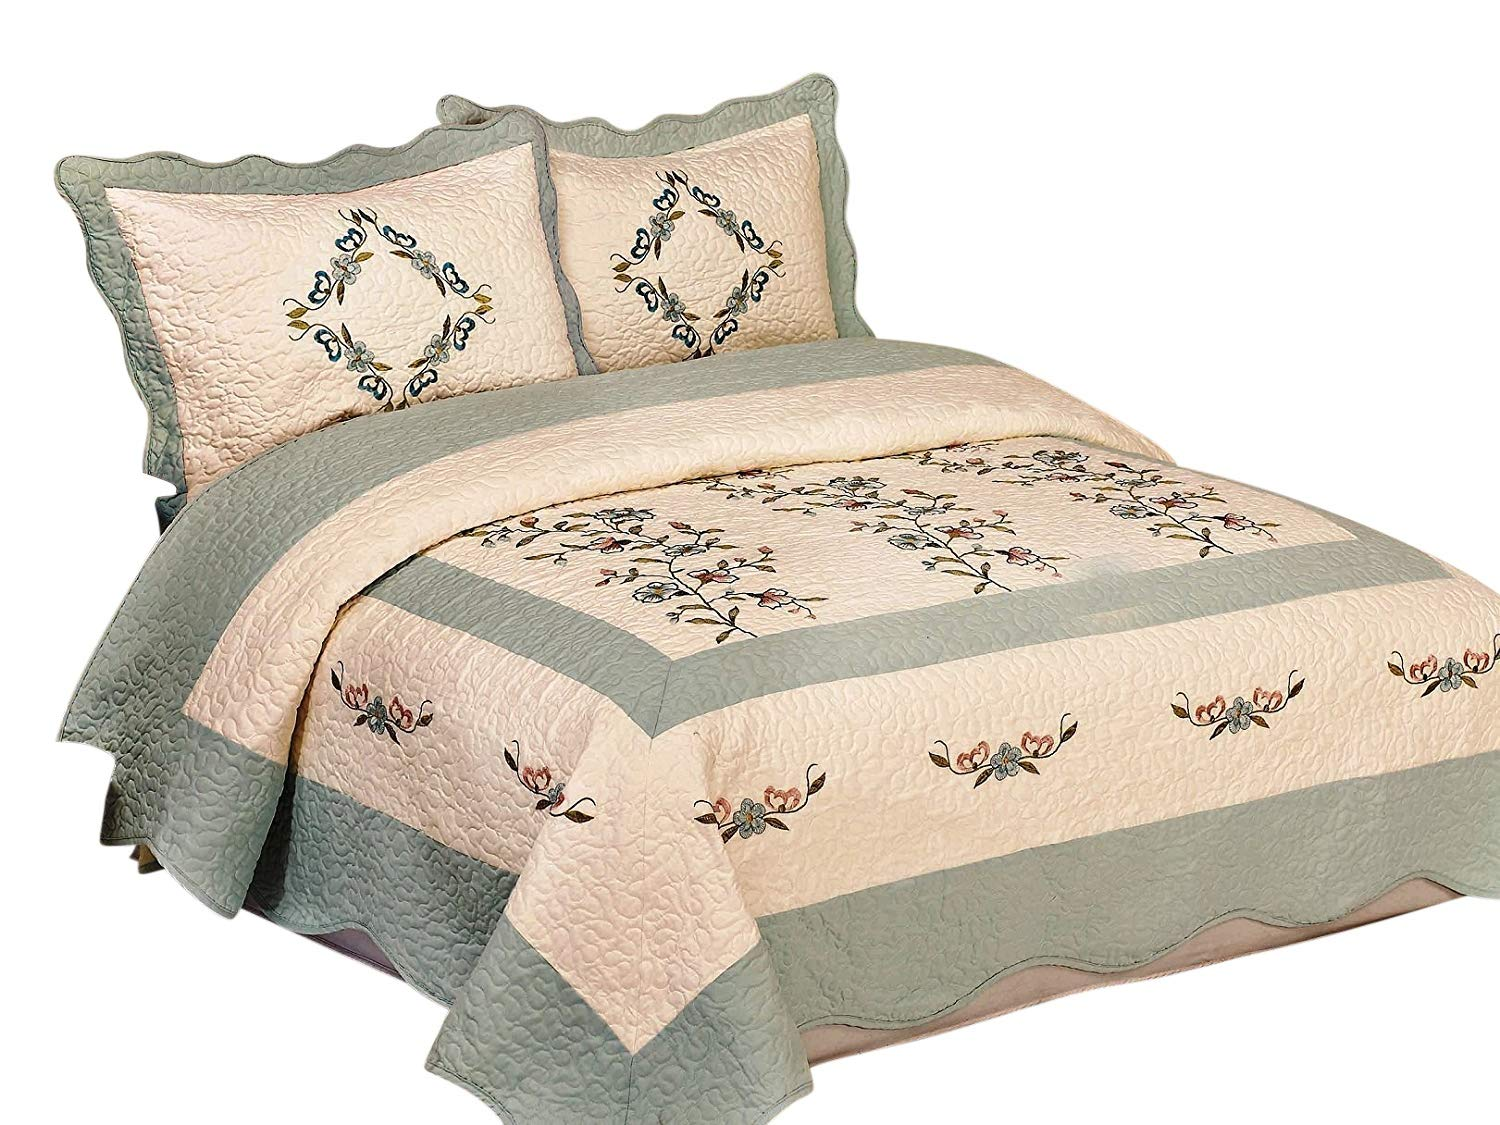 FineHome 3pcs Fully Quilted Embroidery Quilts Bedspread Bed Coverlets Cover Set, Queen King (Beige/AquaBlue)